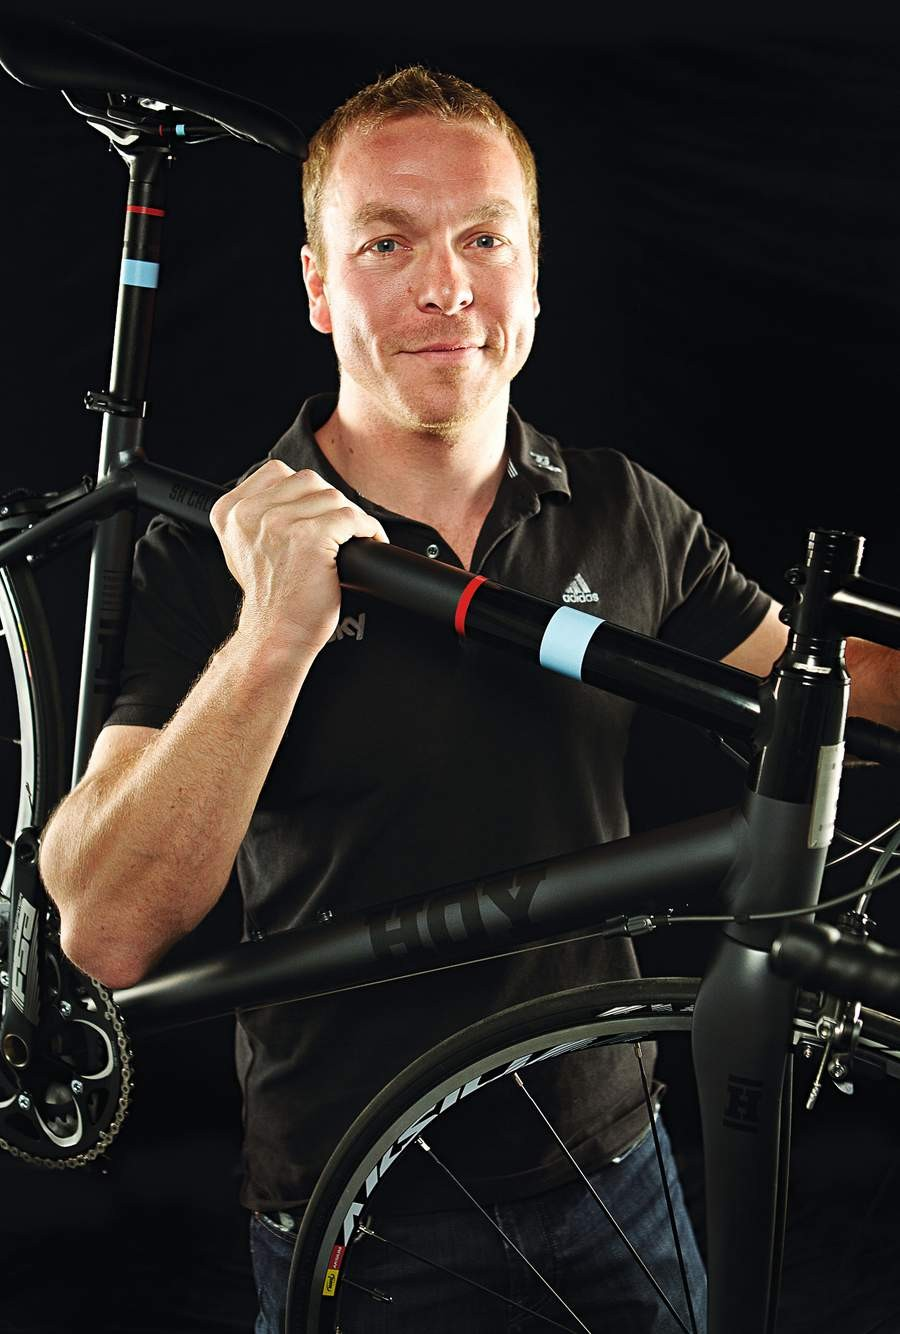 Sir Chris Hoy will be making a return appearence at the London Bike Show in February 2014